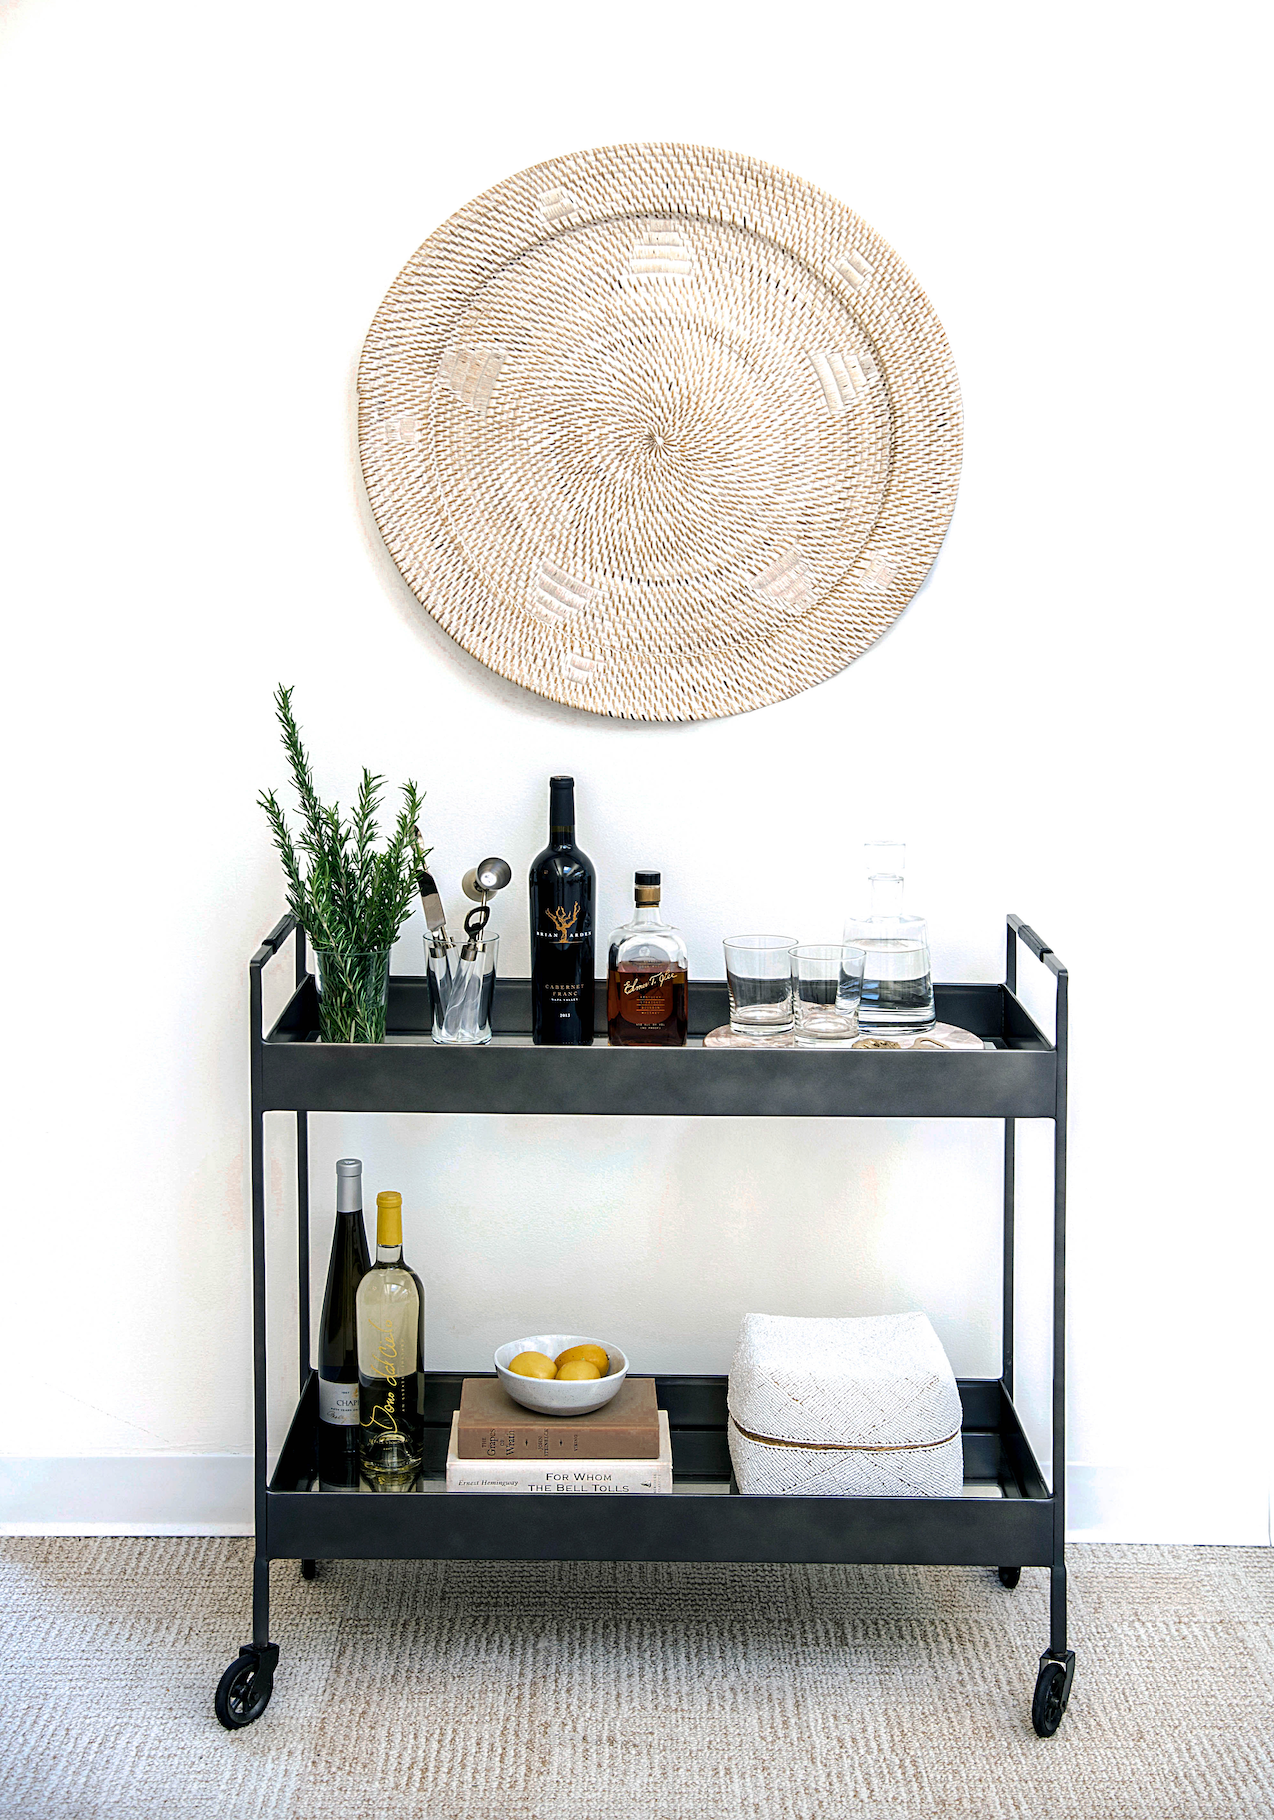 Styled bar cart shot in true Botanicals office with wine and plants below large woven wall basket hanging on wall.